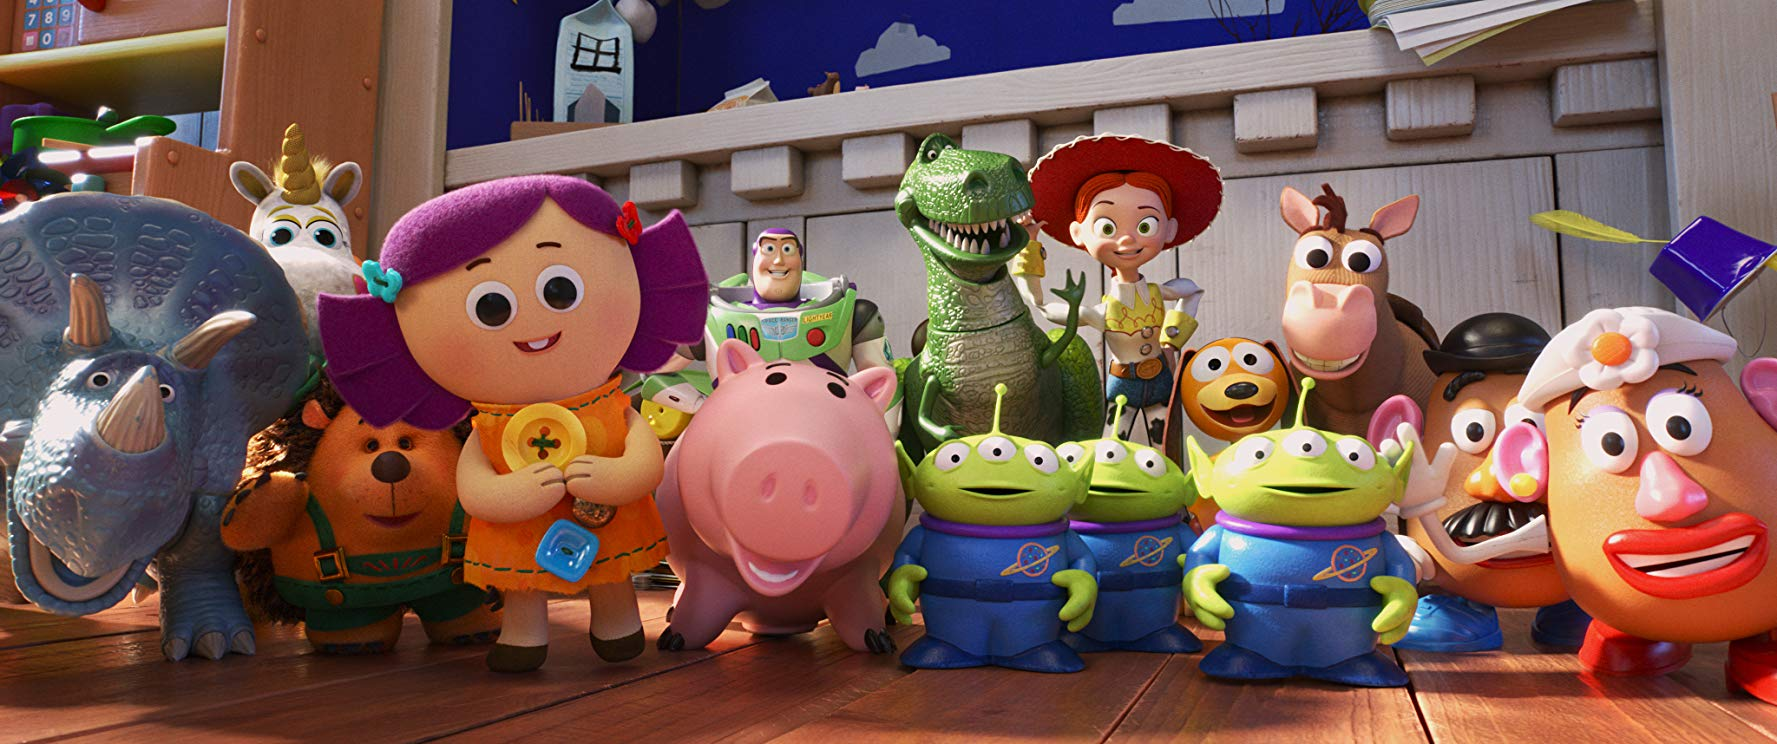 Movie Review Toy Story 4-1933